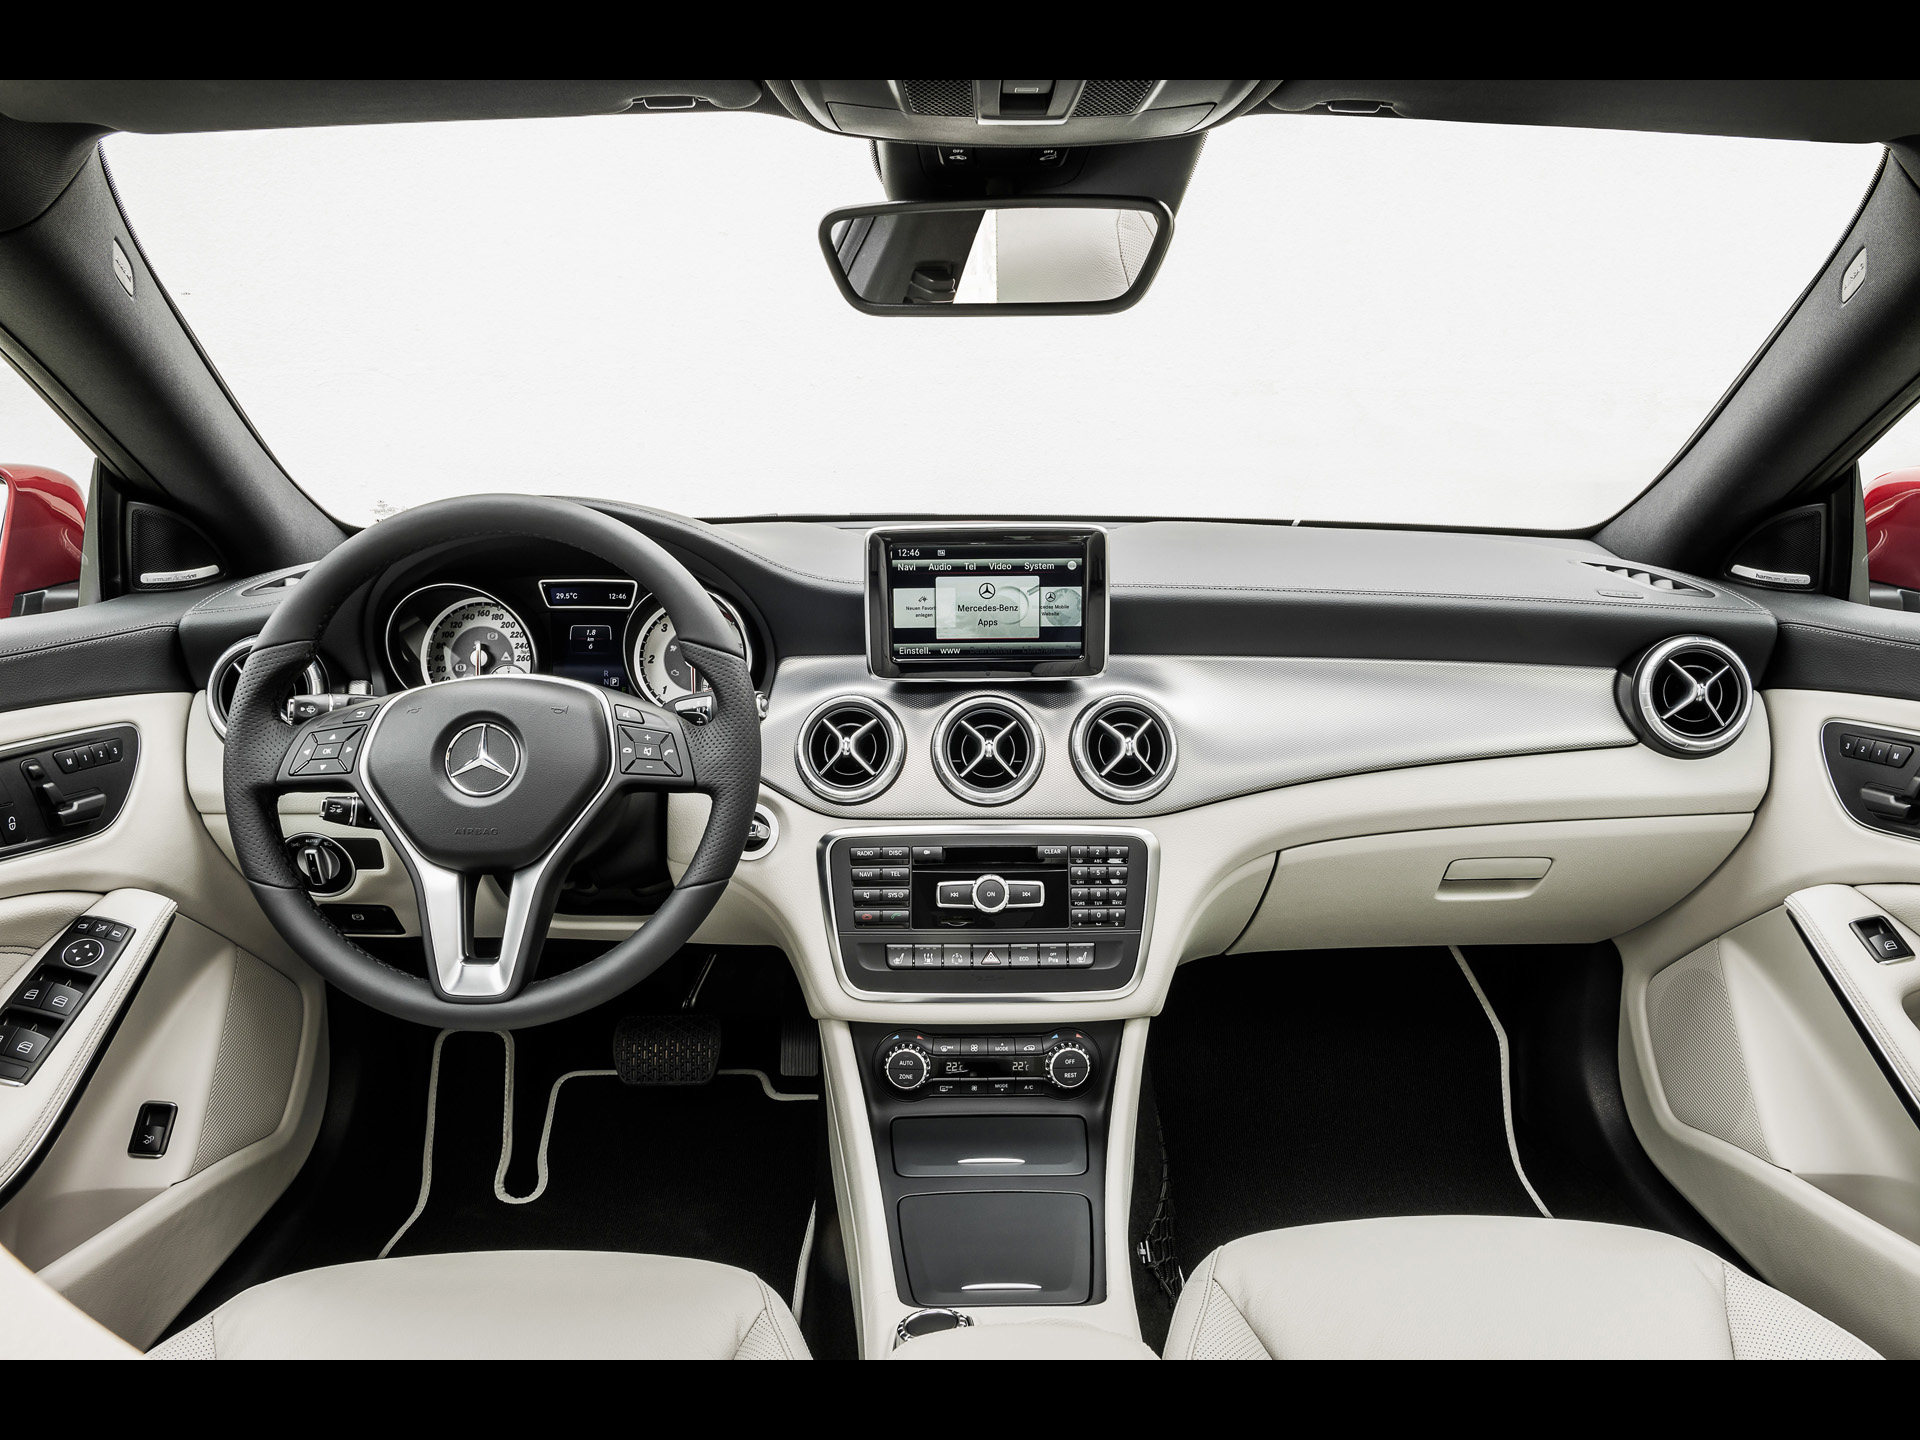 MERCEDES-BENZ 220 CDI interior